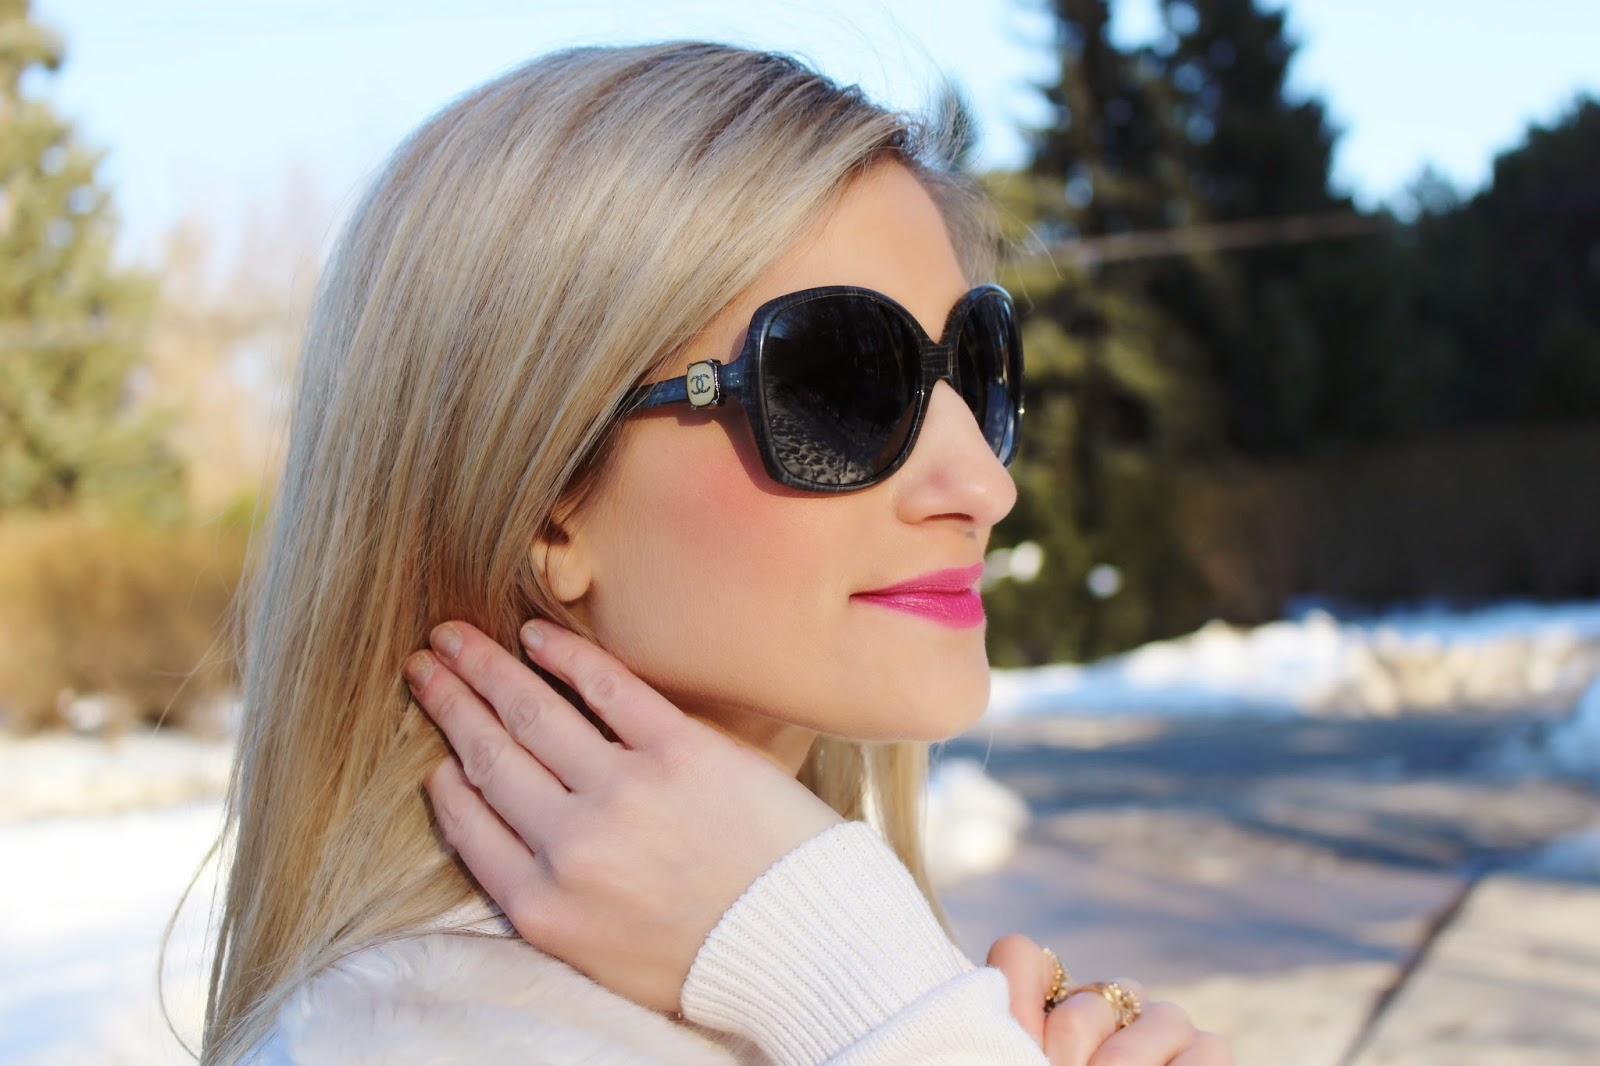 Calvin Klein, beauty, estee lauder, fashion blogger, doublewear,Chanel, sunglasses, foundation